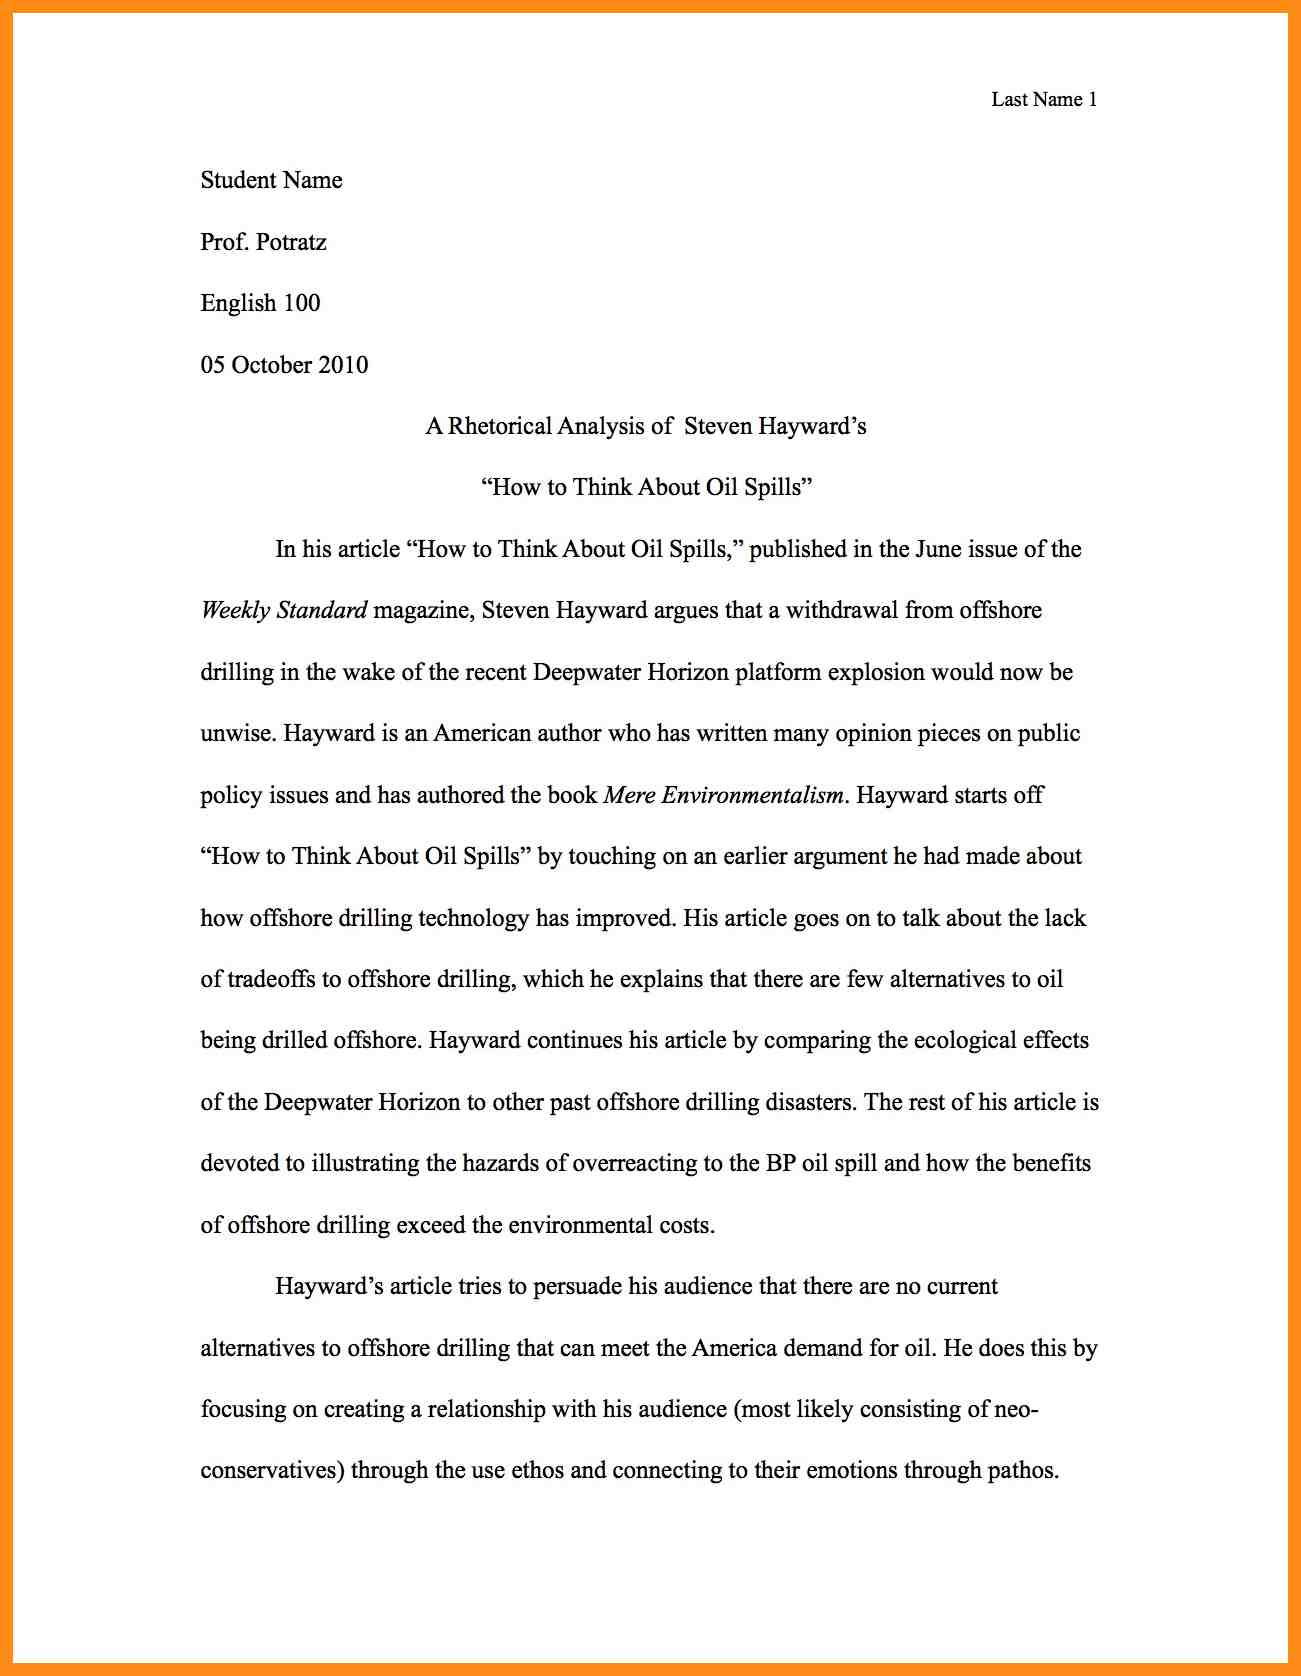 001 Essay Example Write Best Rhetorical Analysis Of Using Ethos Pathos And Logos Breathtaking Meaning Ap English Device Outline Full